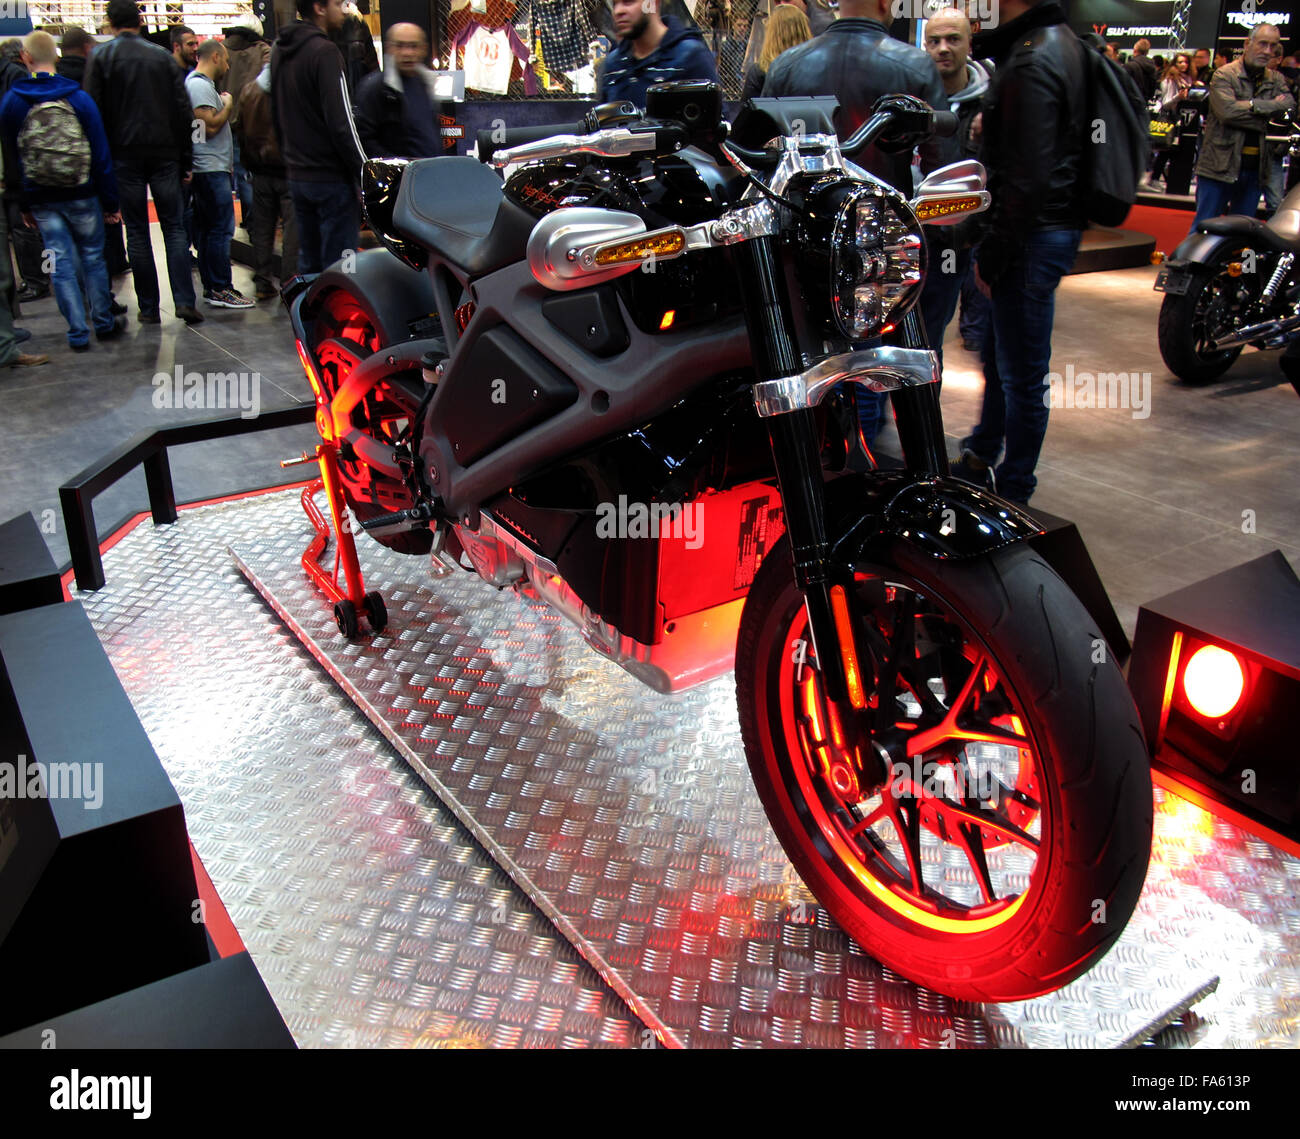 Harley-Davidson LiveWire electric motorcycle,USA, in Paris Motorcycle Show, France - Stock Image